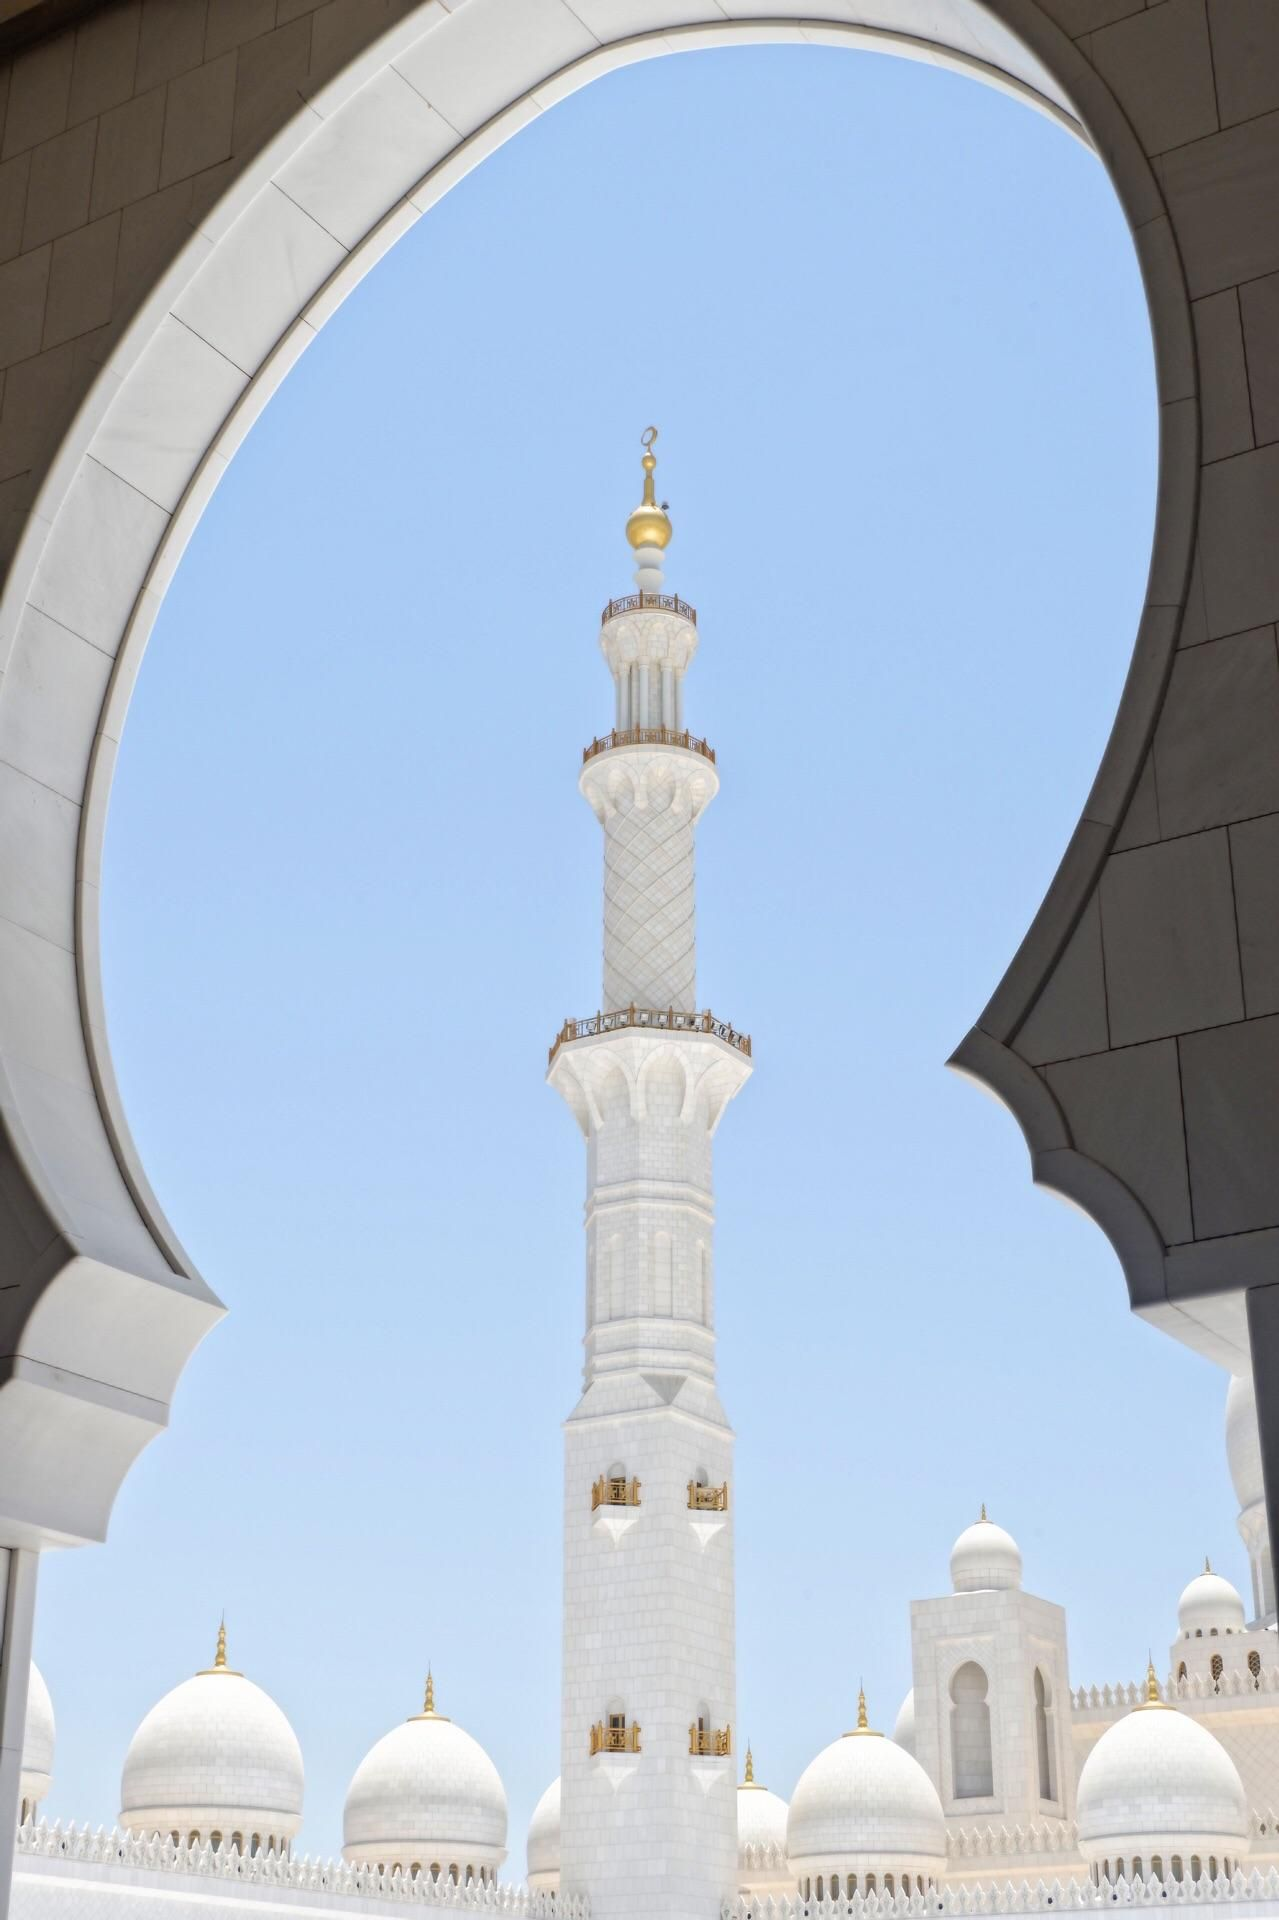 Visiting Sheikh Zayed Grand Mosque has been one of my dreams and it doesn't disappoint. It's magnificently beautiful.